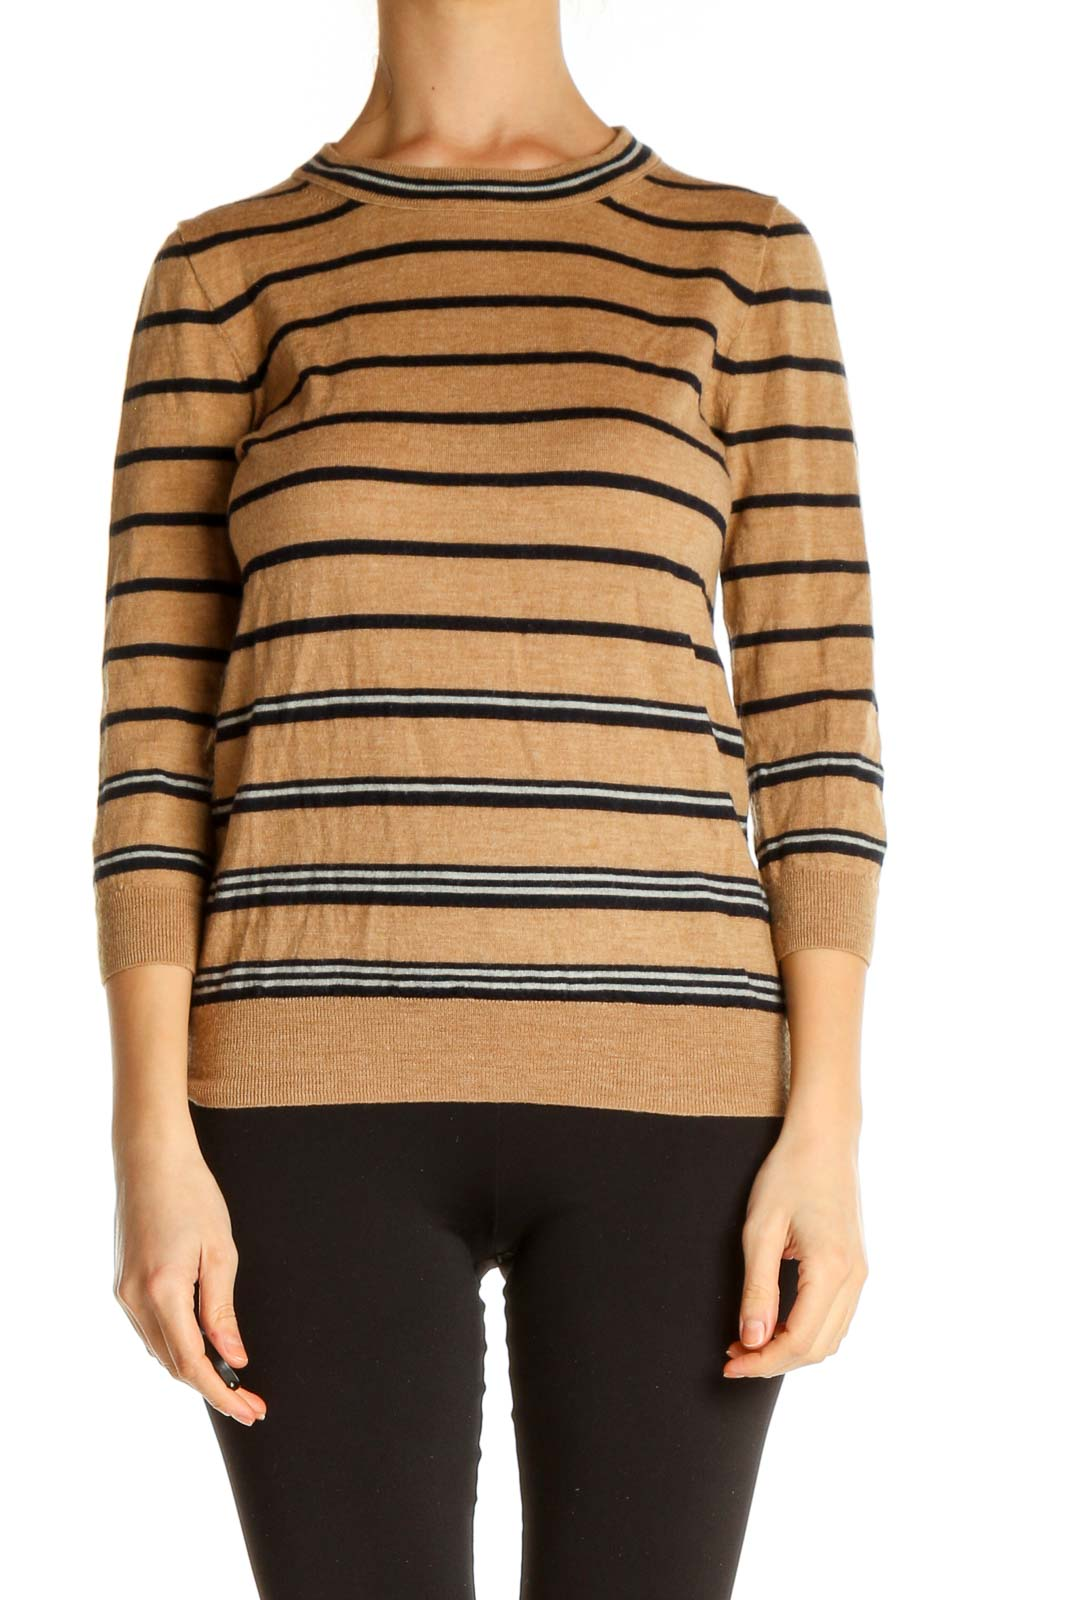 Brown Striped All Day Wear Sweater Front